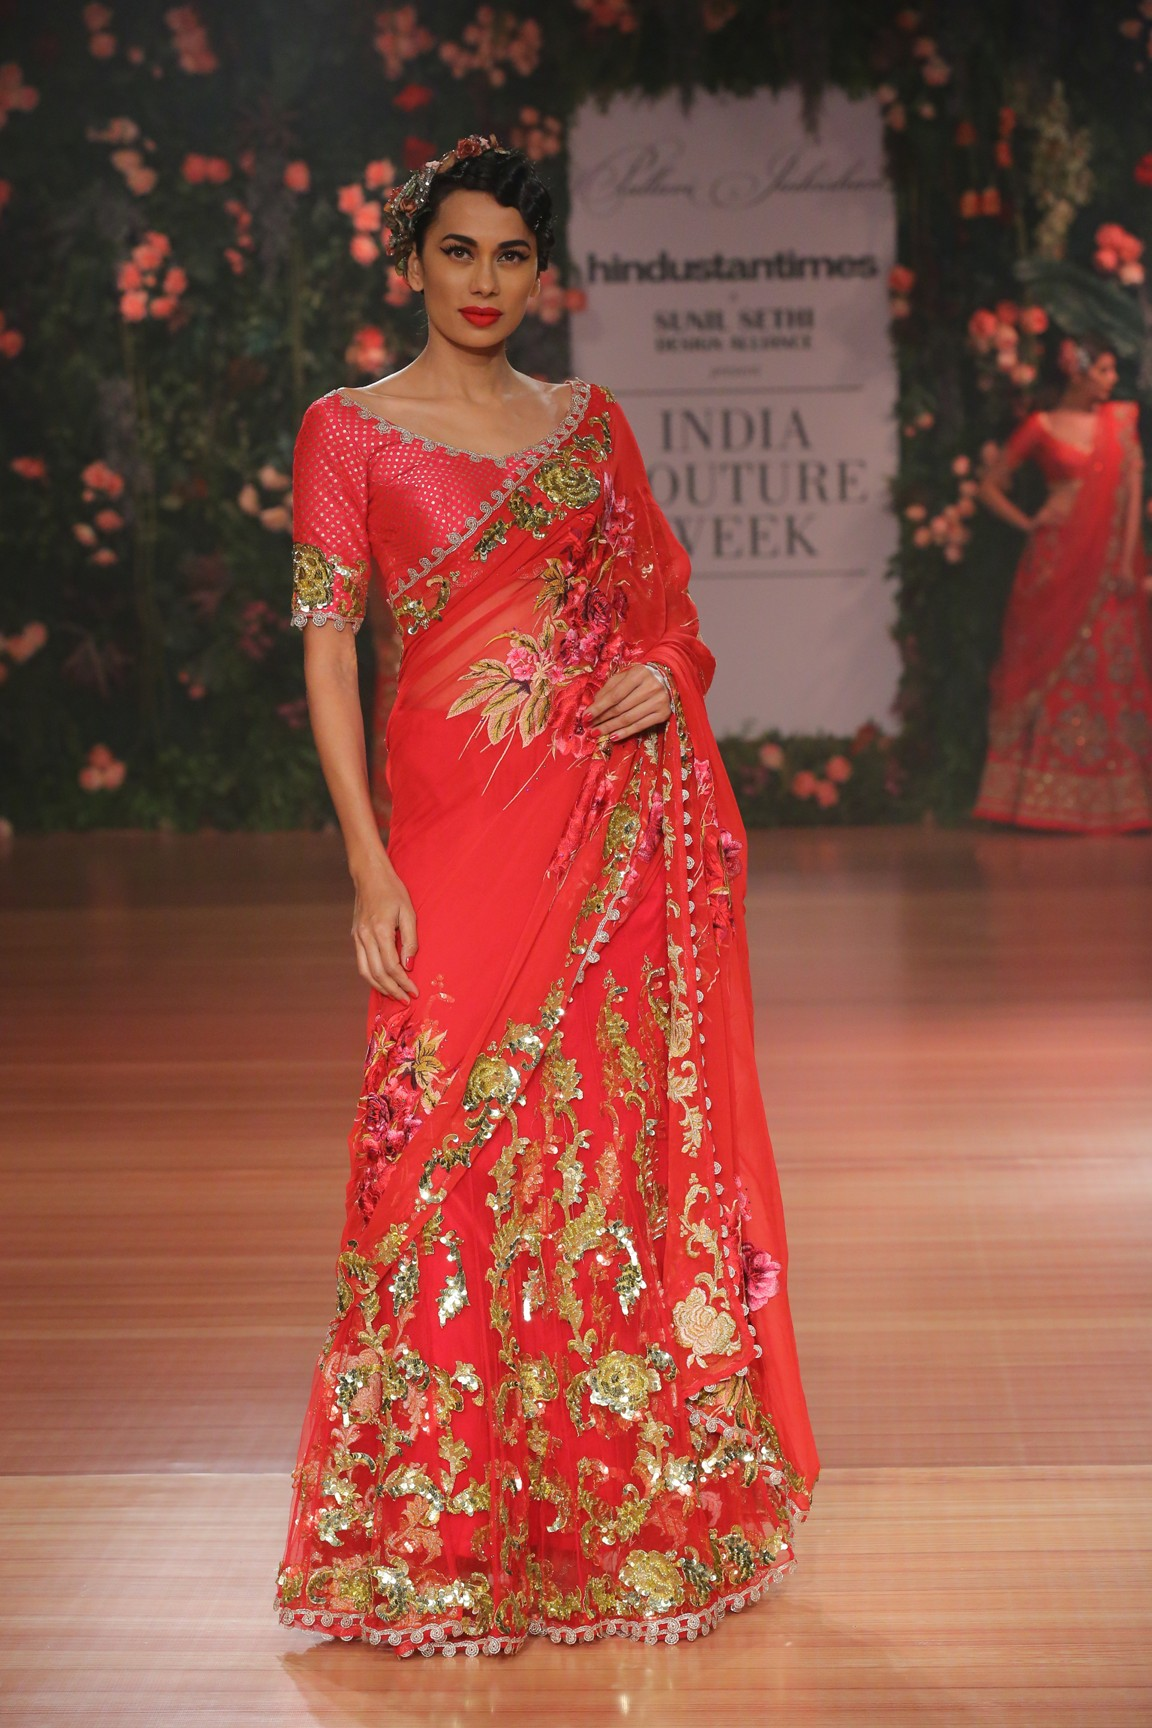 'Nostalgia' by Pallavi Jaikishan at FDCI India Couture Week 2018